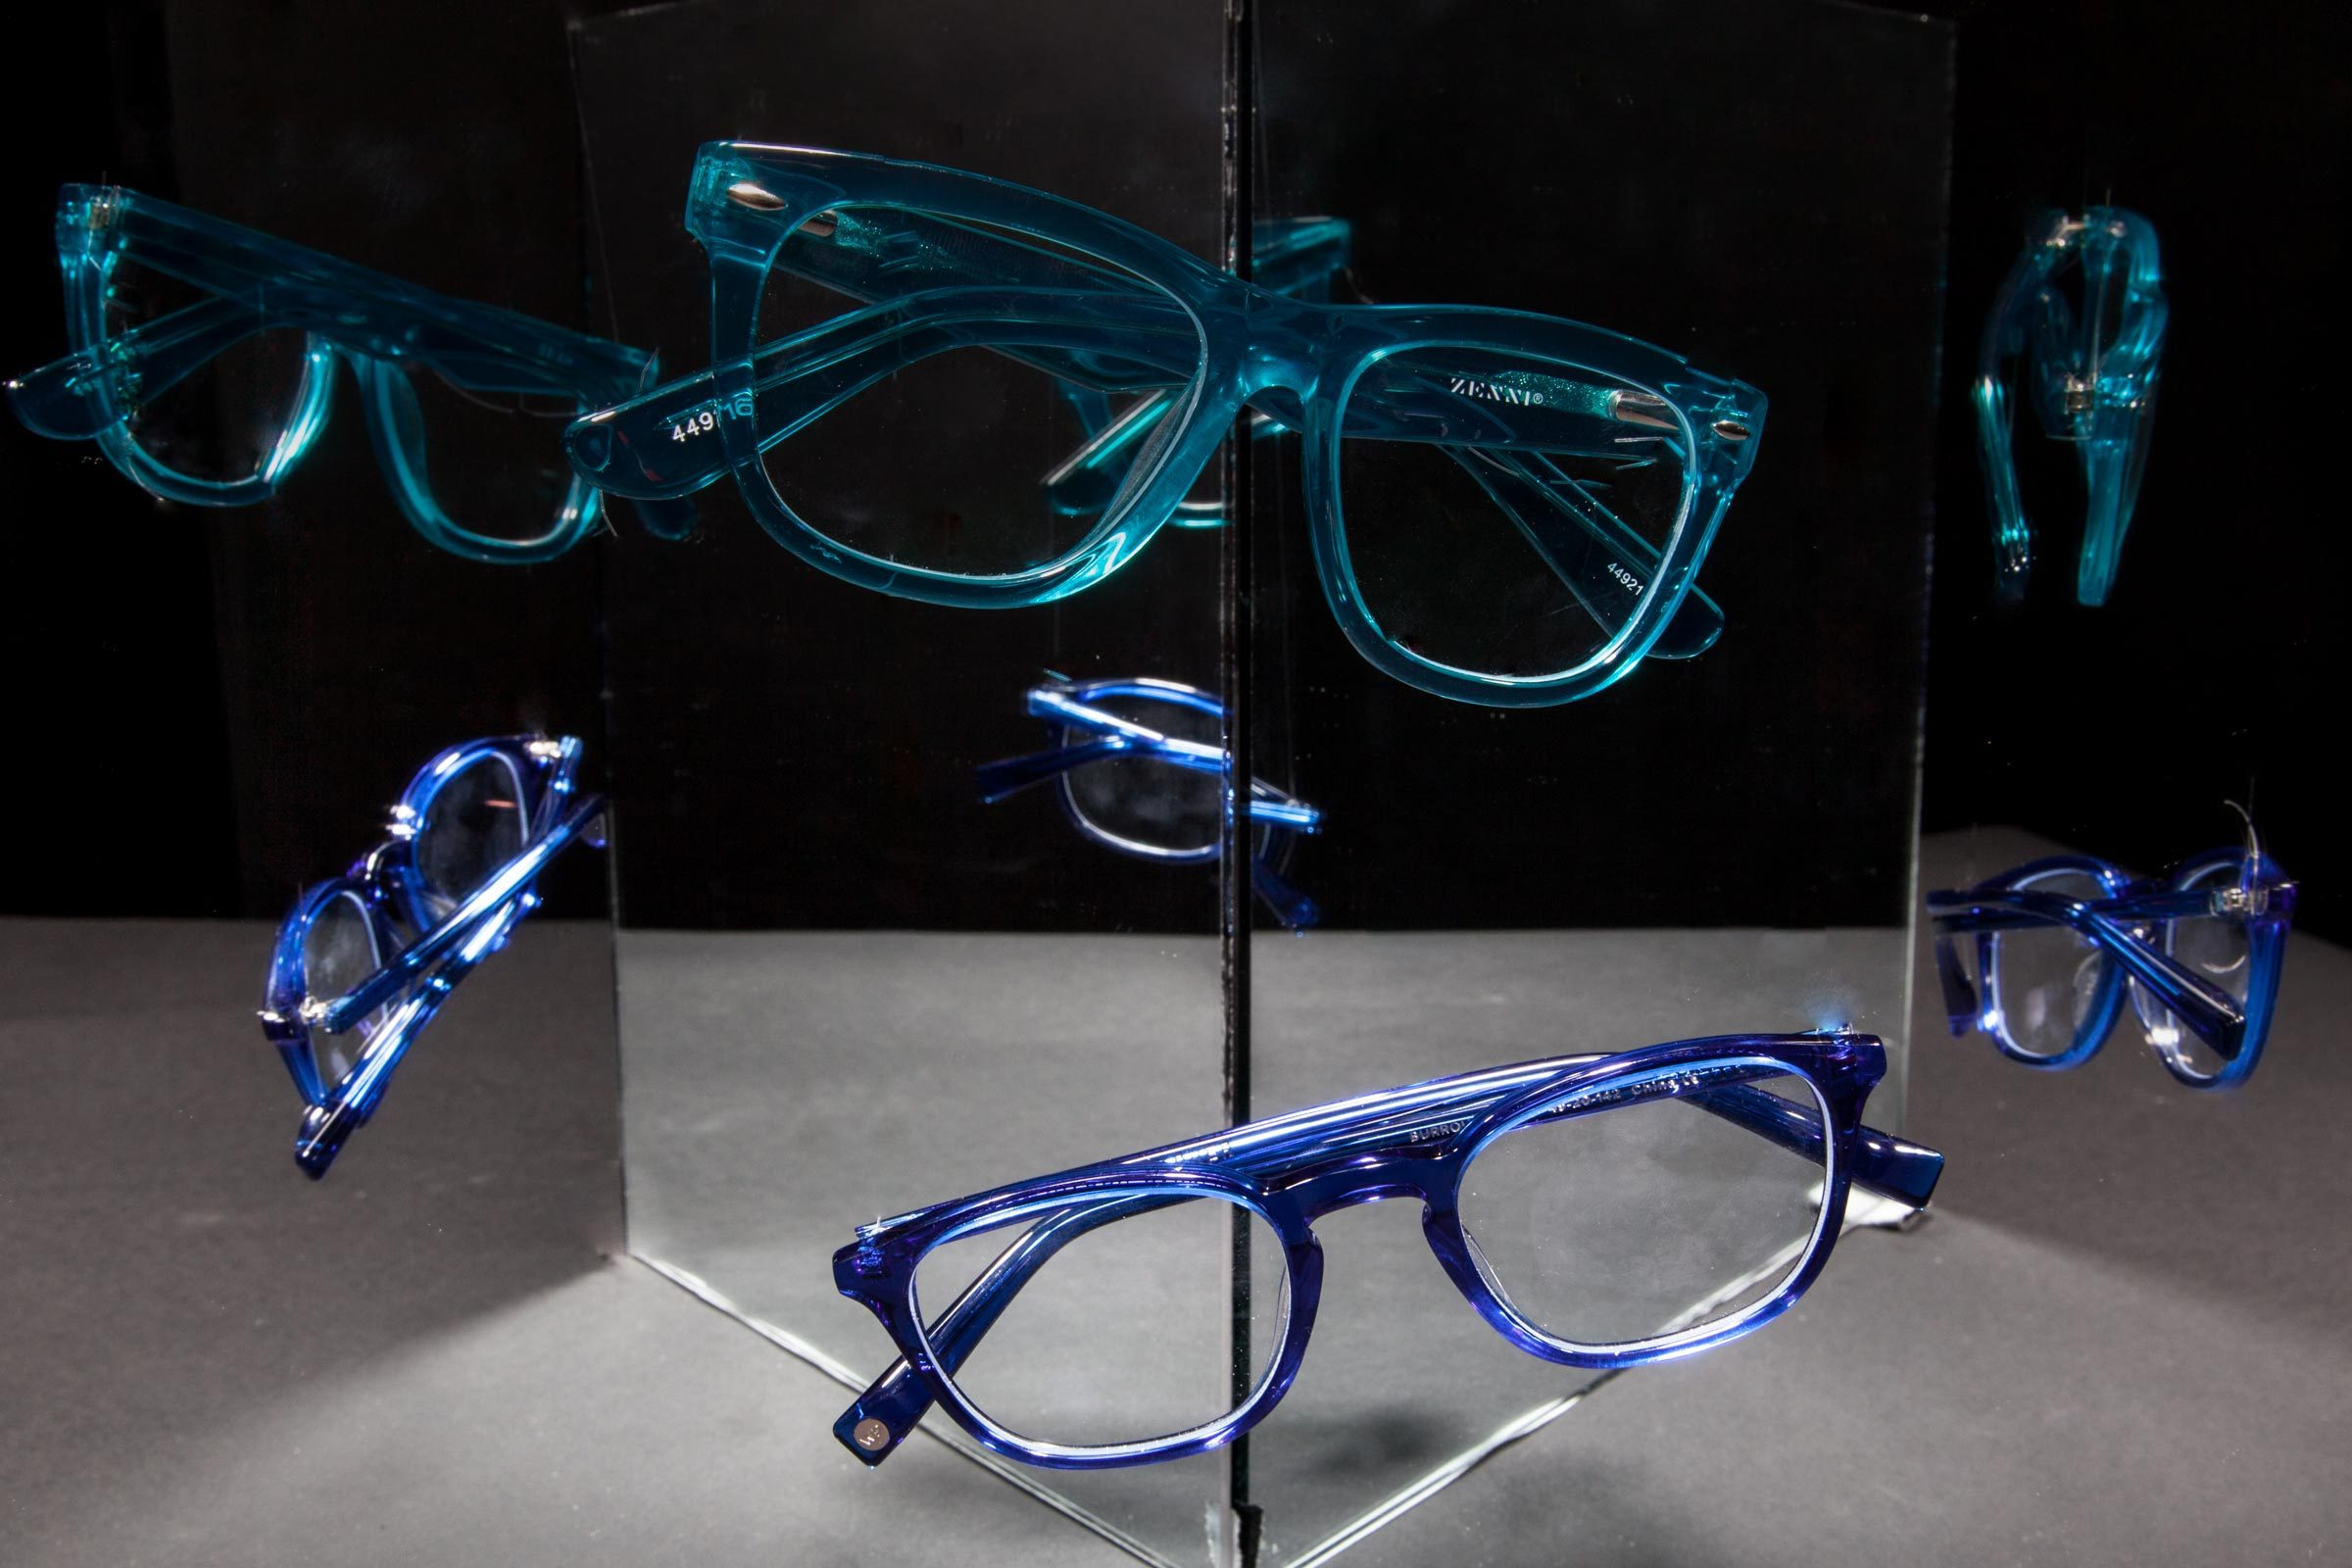 d065c27288fd What Your Glasses Are Secretly Revealing About Your Personality